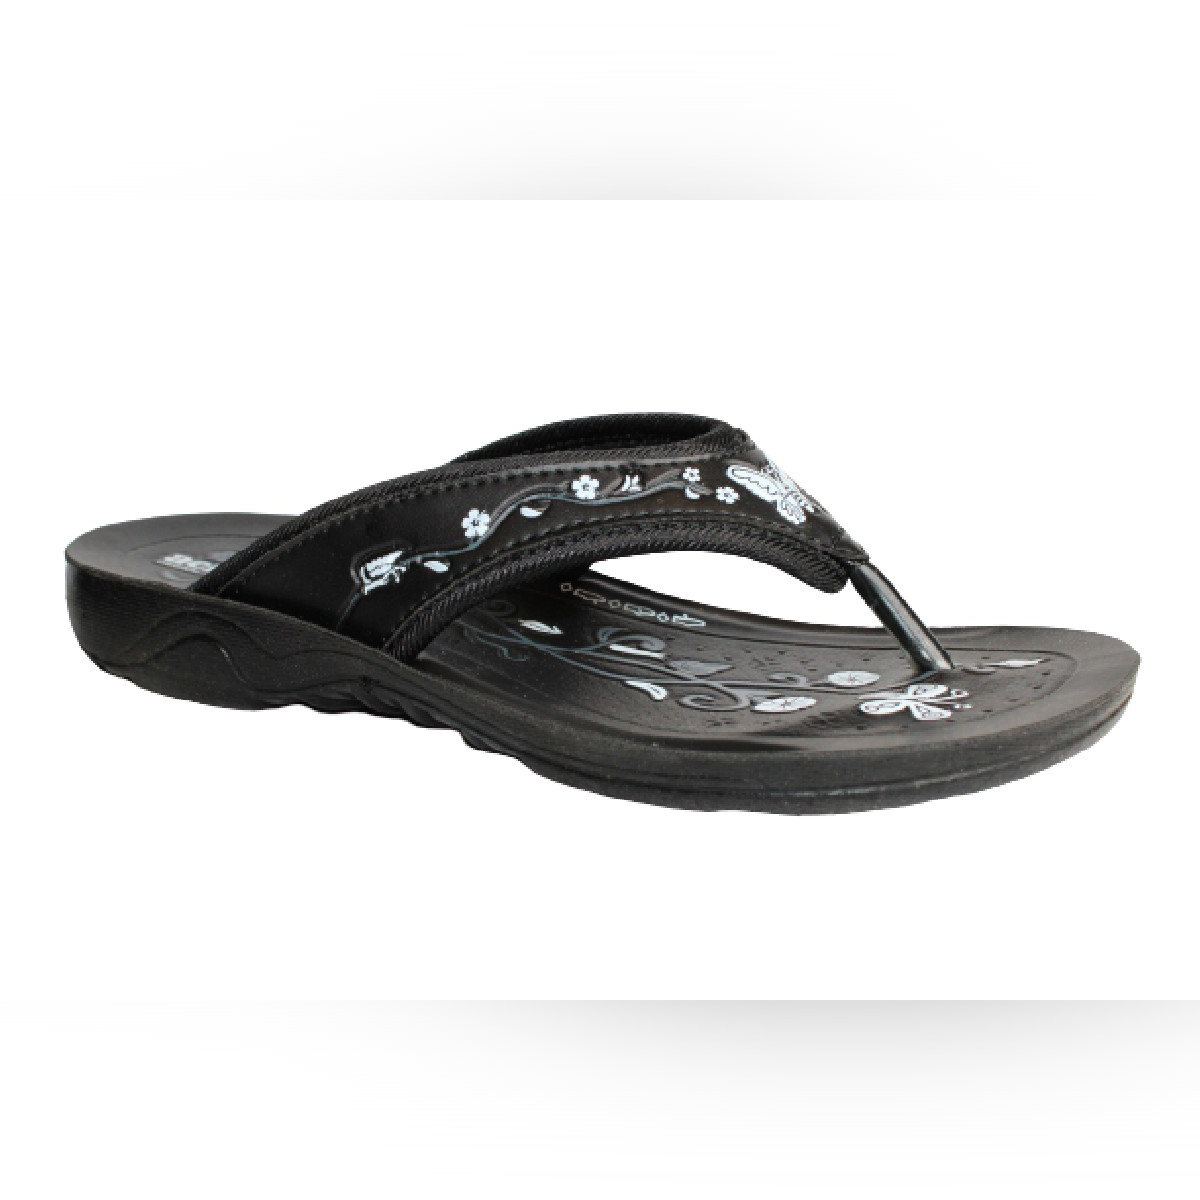 Aerosoft Synthetic Leather Slippers For Women S3909